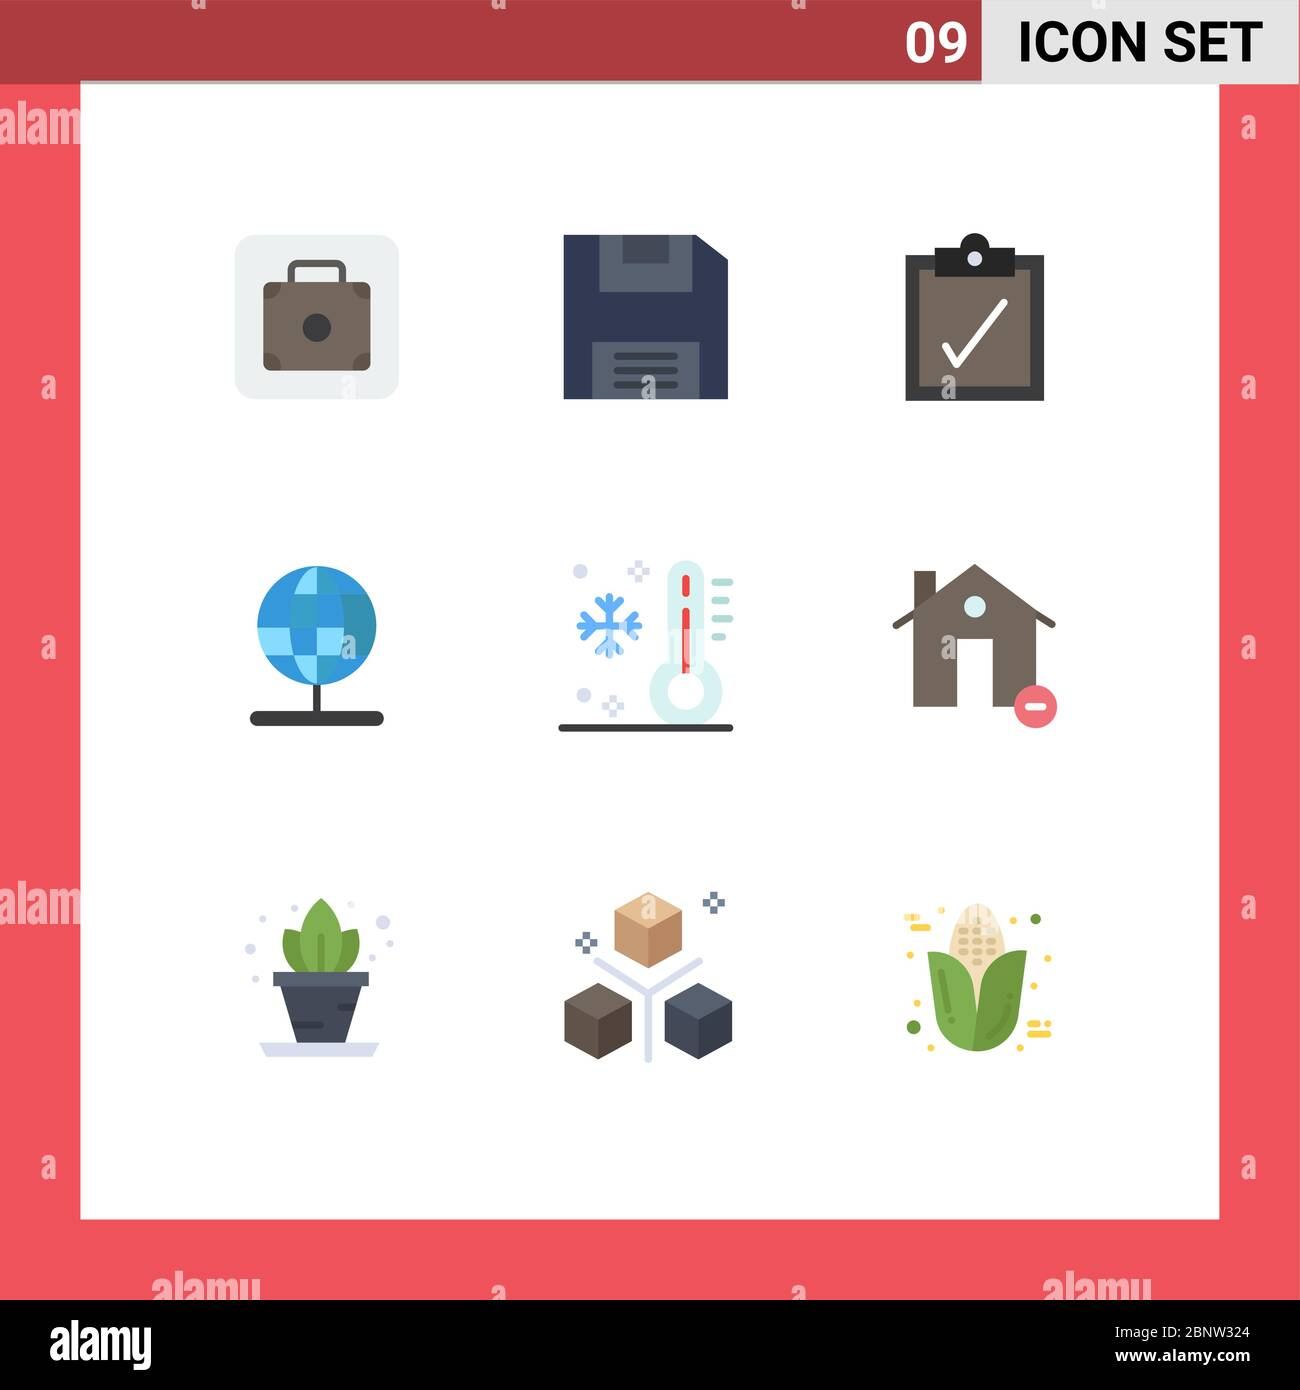 Pictogram Set Of 9 Simple Flat Colors Of Vacation Summer Task Low World Editable Vector Design Elements Stock Vector Art Illustration Vector Image 357666348 Alamy